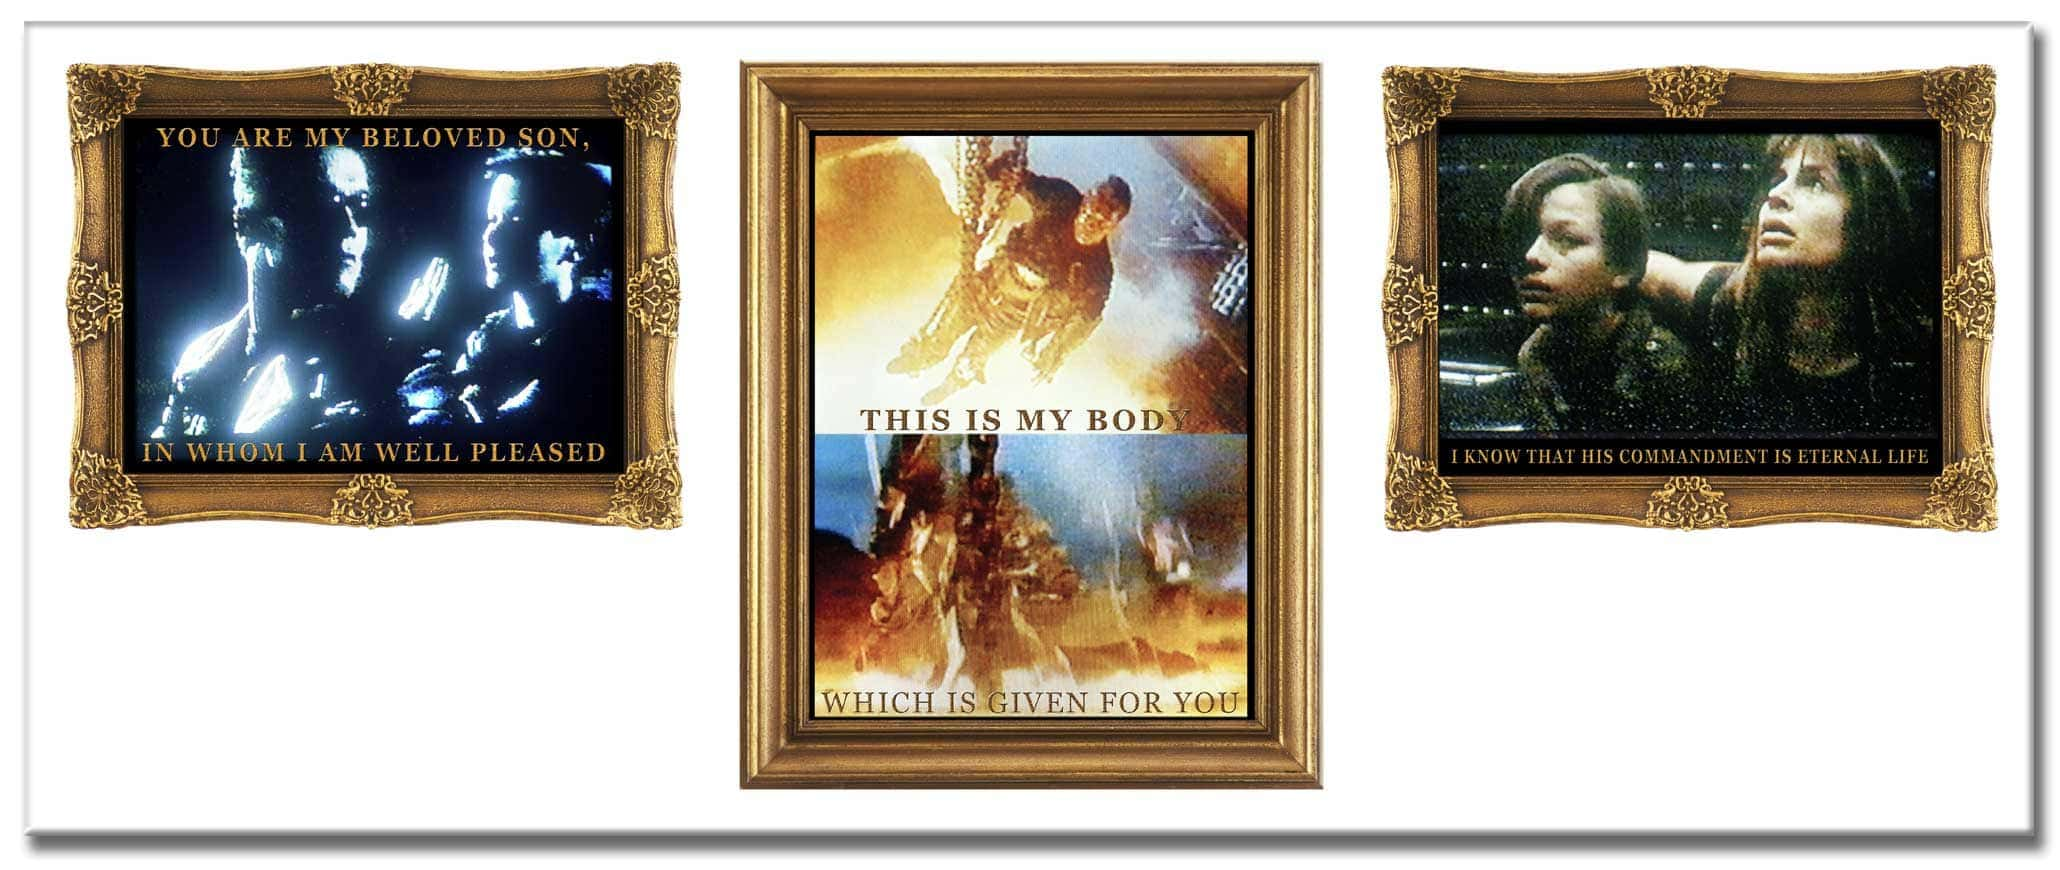 Restoration (1996-2008), two digital photo-collages as triptychs, each 110 x 260 cm (or six single images), c-prints behind acrylic glass, on aluminium. Titles of this collage: Father and Son   Saviour   Mother and Son.